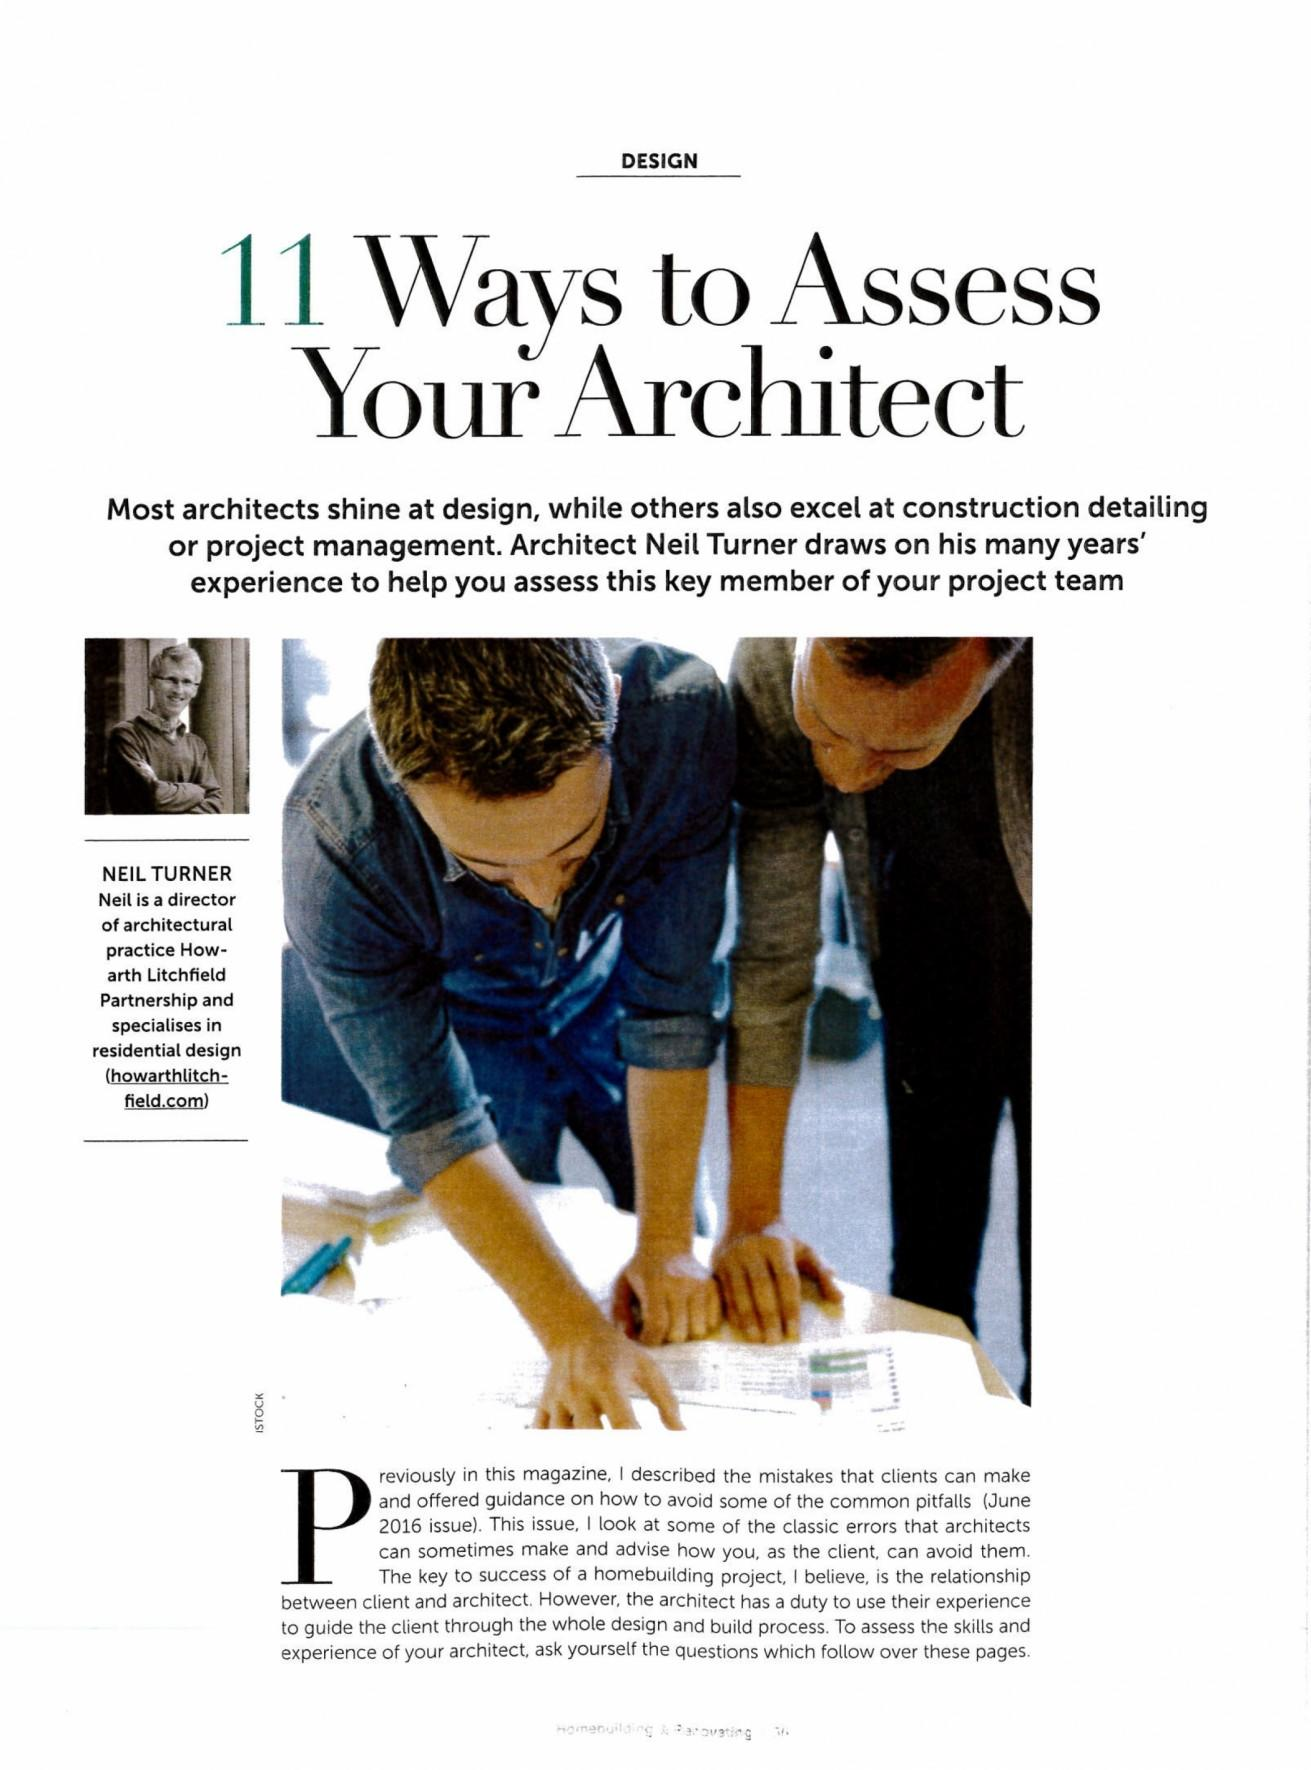 11 Ways to Assess Your Architect-1